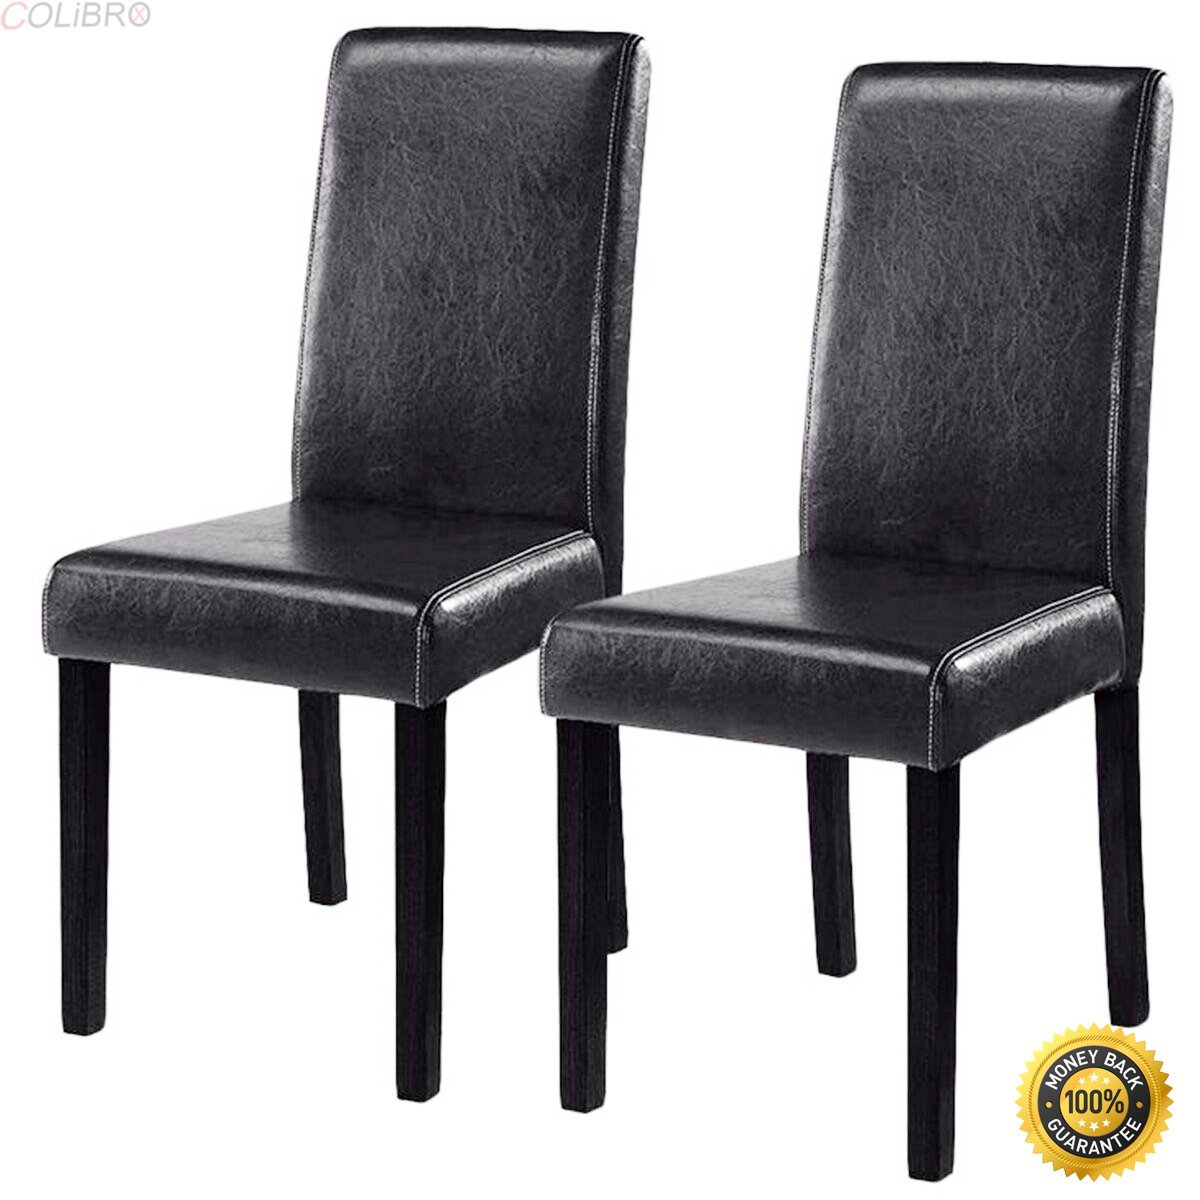 Get quotations · colibrox set of 2 black elegant design leather contemporary dining chairs home room